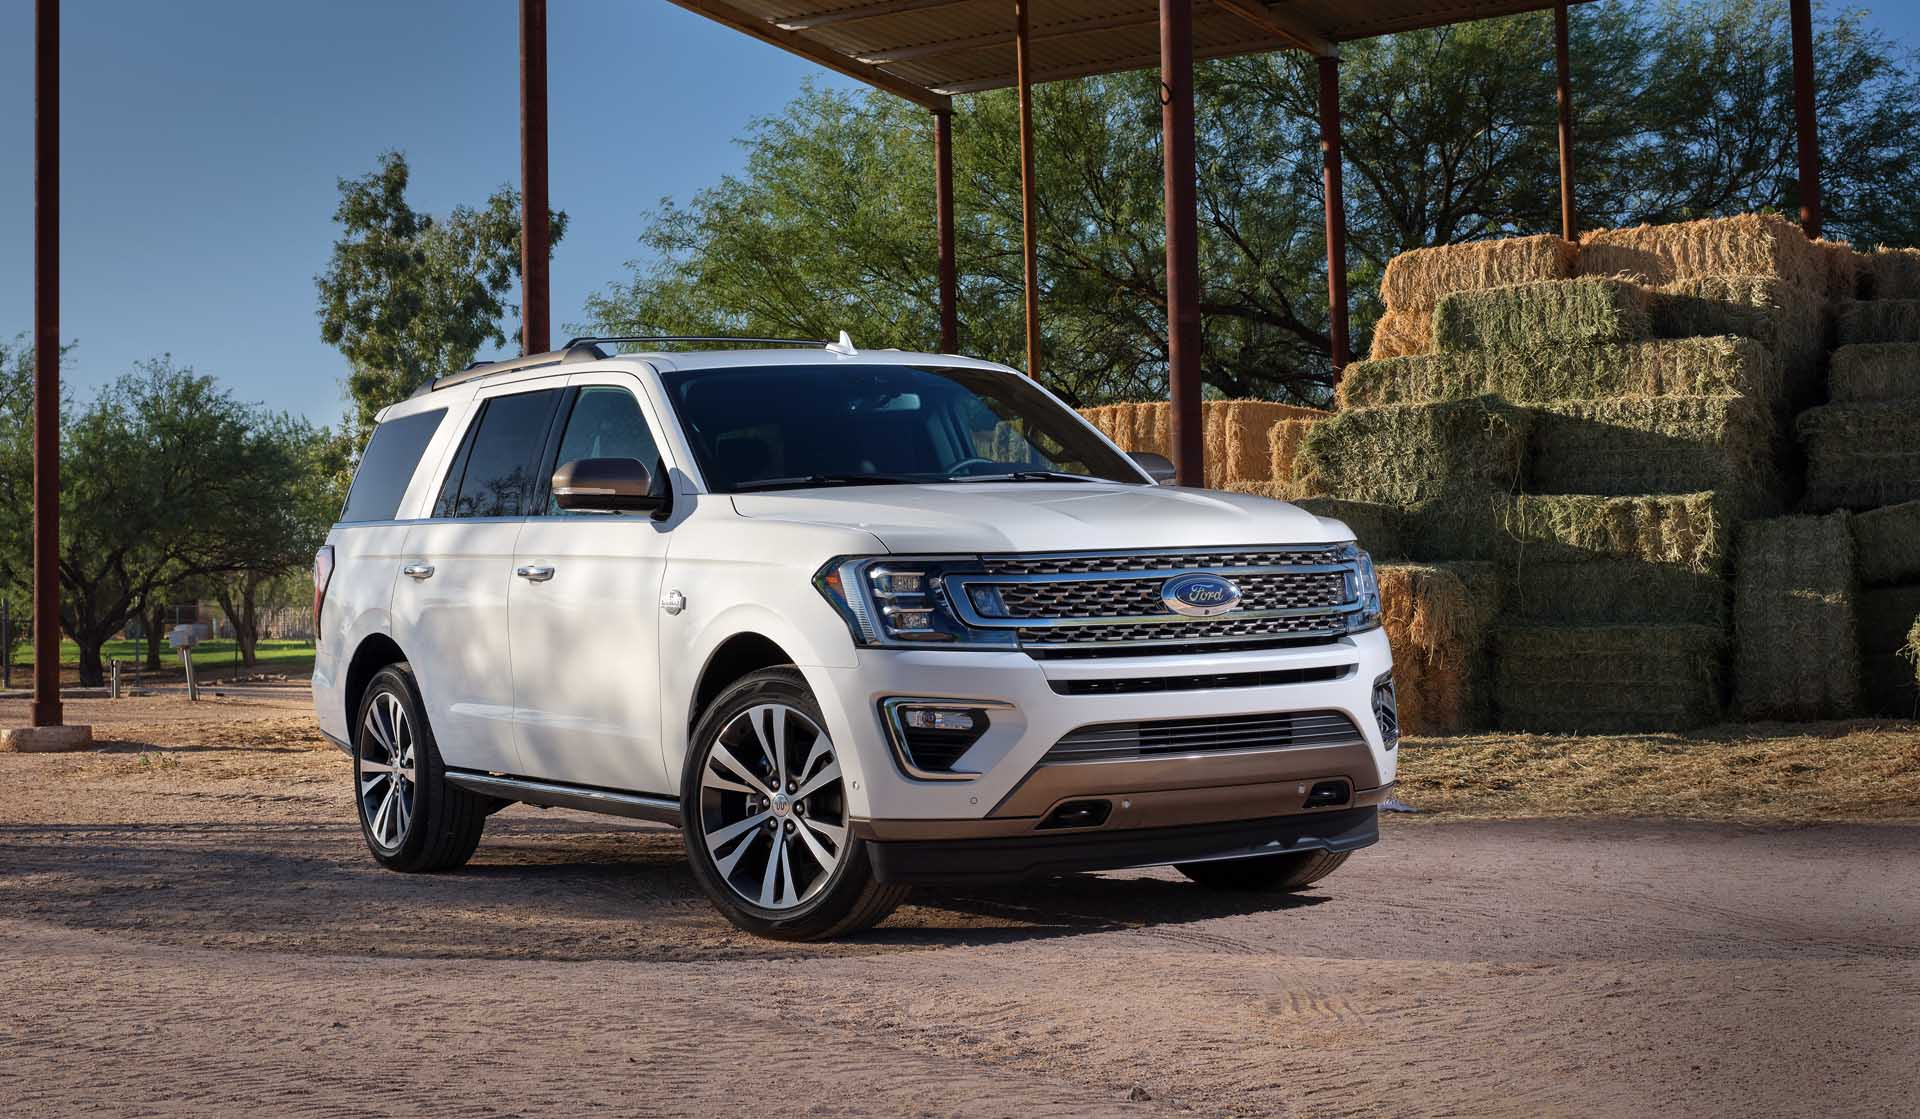 New And Used Ford Expedition Prices Photos Reviews Specs The Car Connection